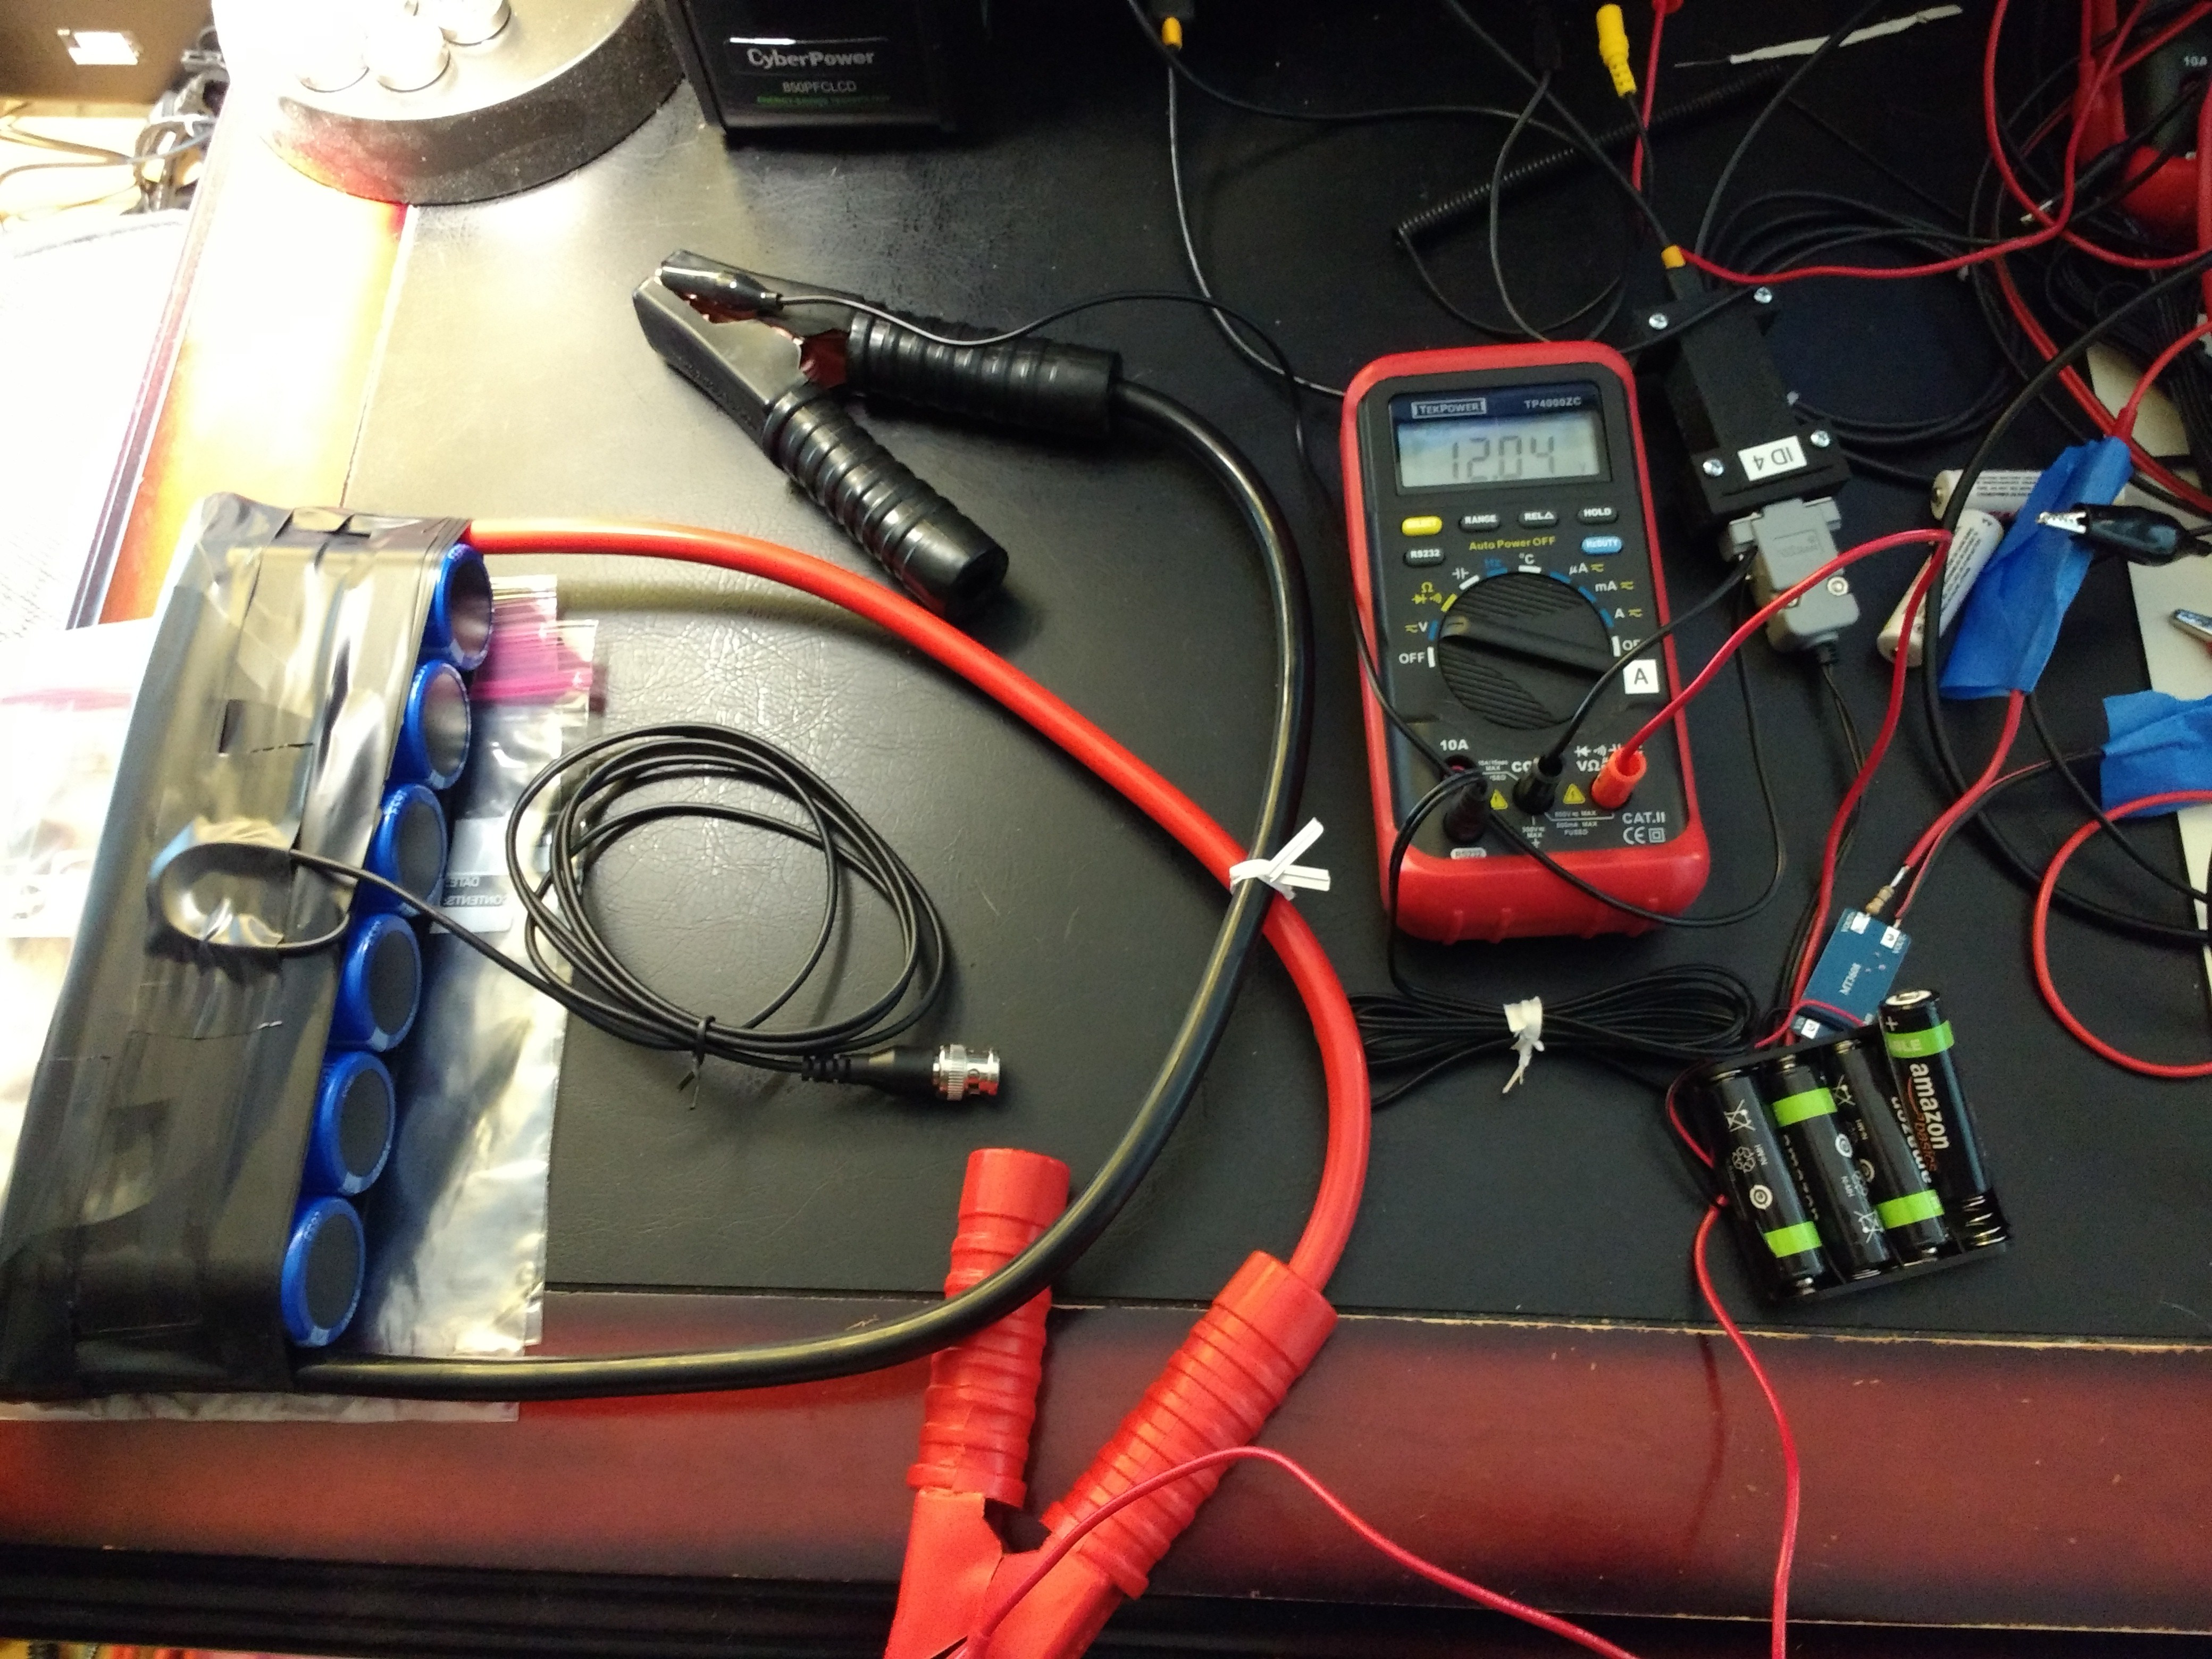 Coin Cell Jump Starter Circuits Charging A 500 F Capacitor It Charges Up Figuring That Not Much Charge Had Found Its Way Into The Cells I Decided To Start With At 11v